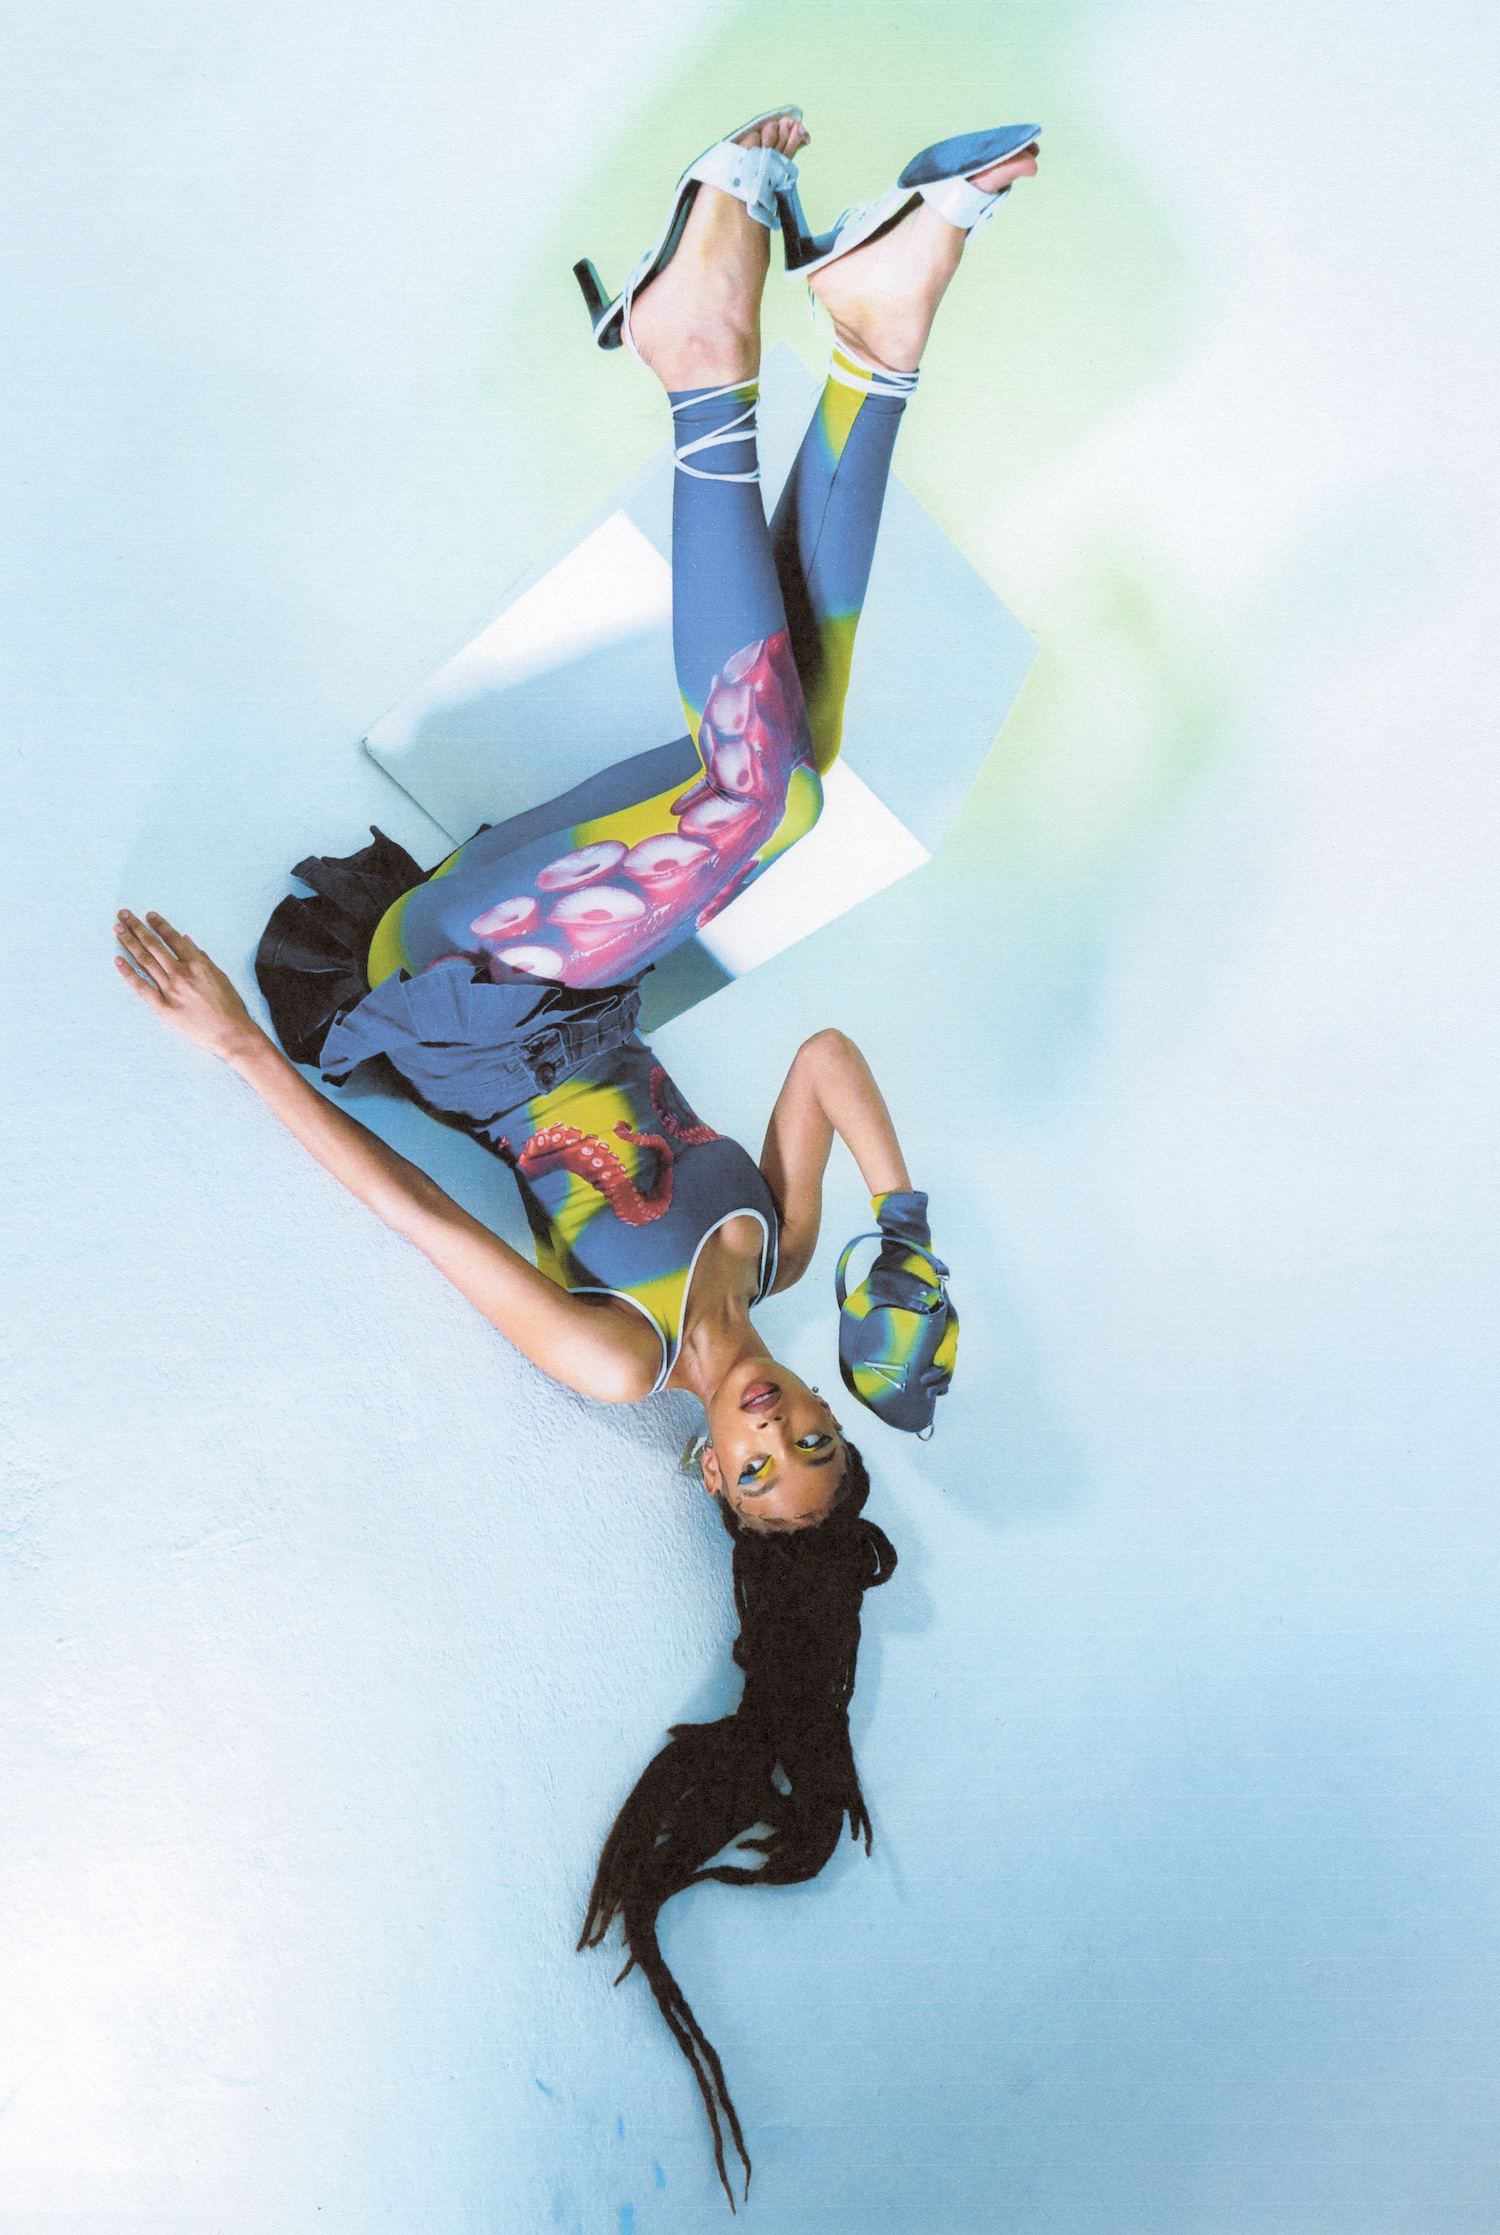 A woman wearing a full Vivendii look lying on her back with her legs propped on a stool. The angle of the images makes it seem as if she is hanging upside down.